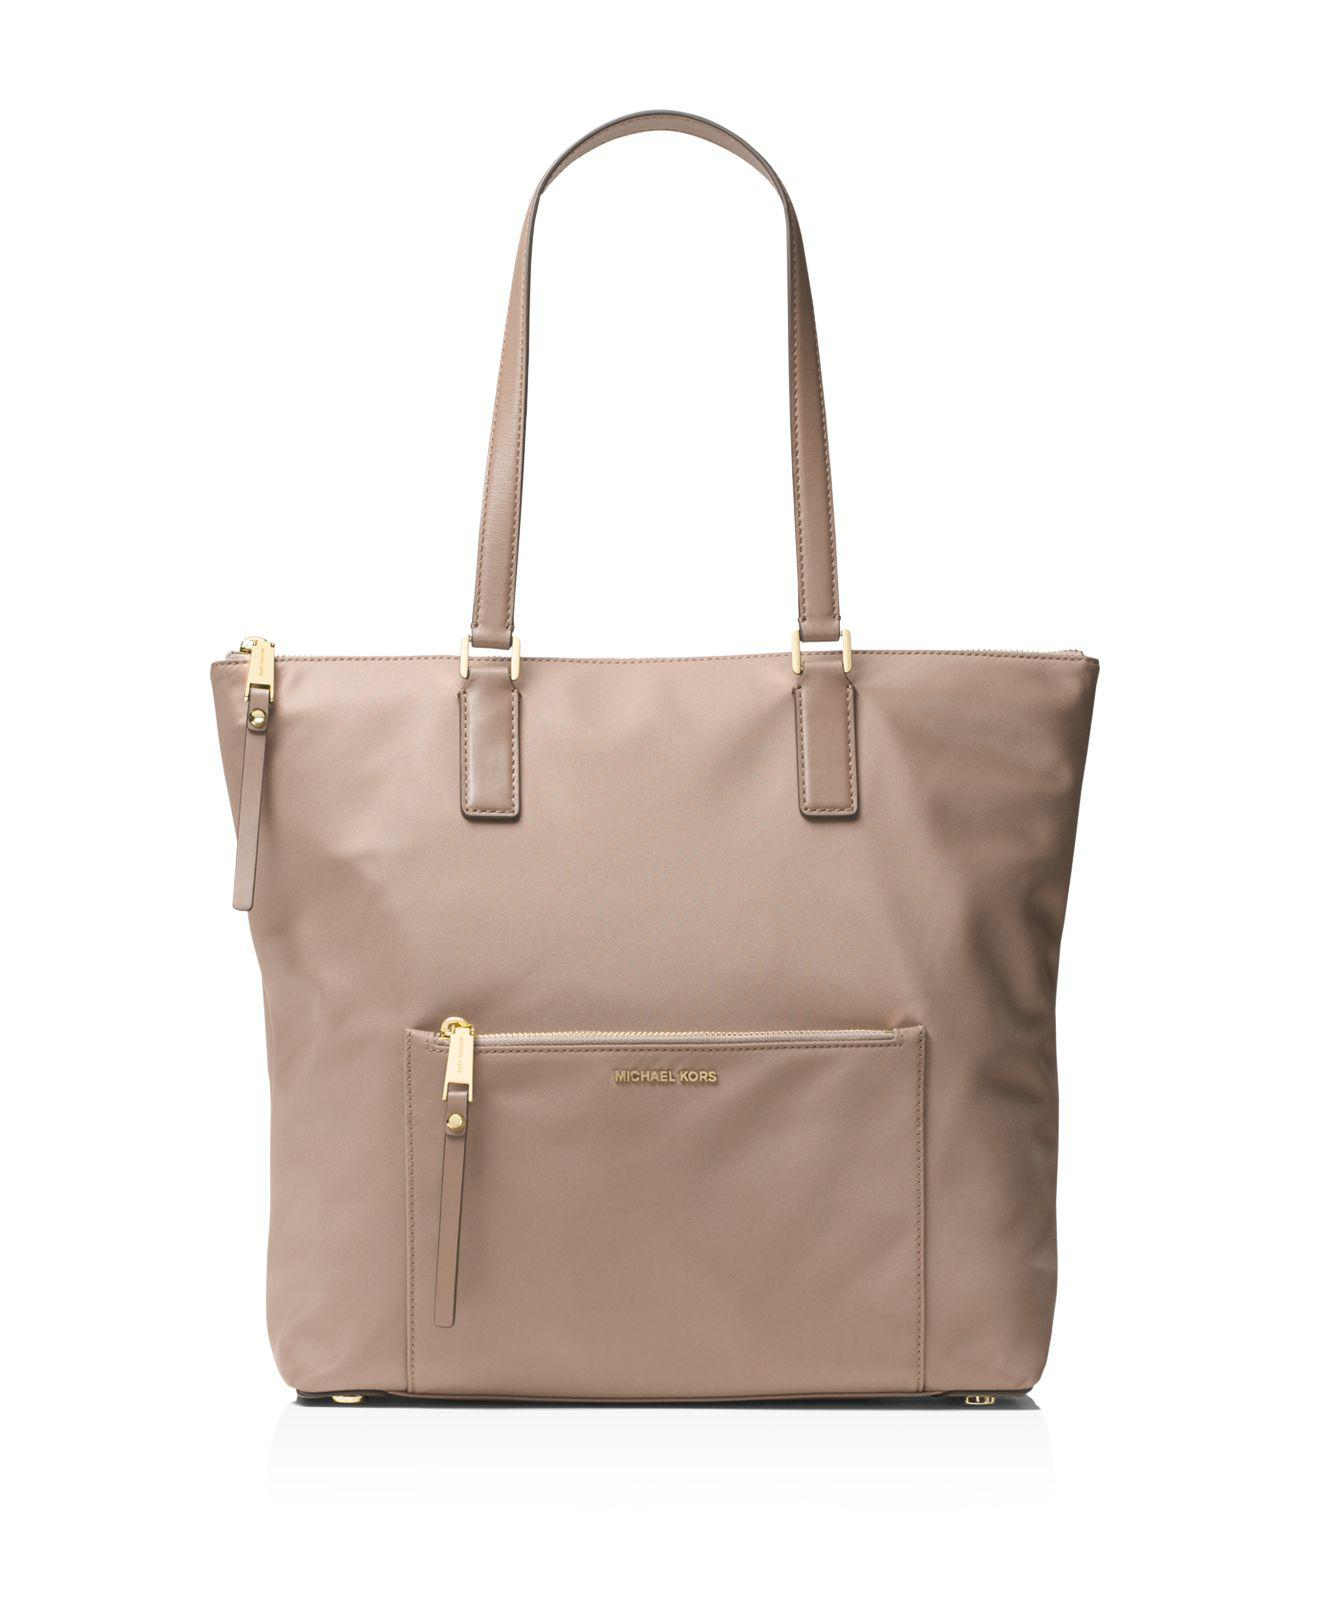 6e7a57ebb976 Lyst - MICHAEL Michael Kors Ariana North south Large Nylon Tote